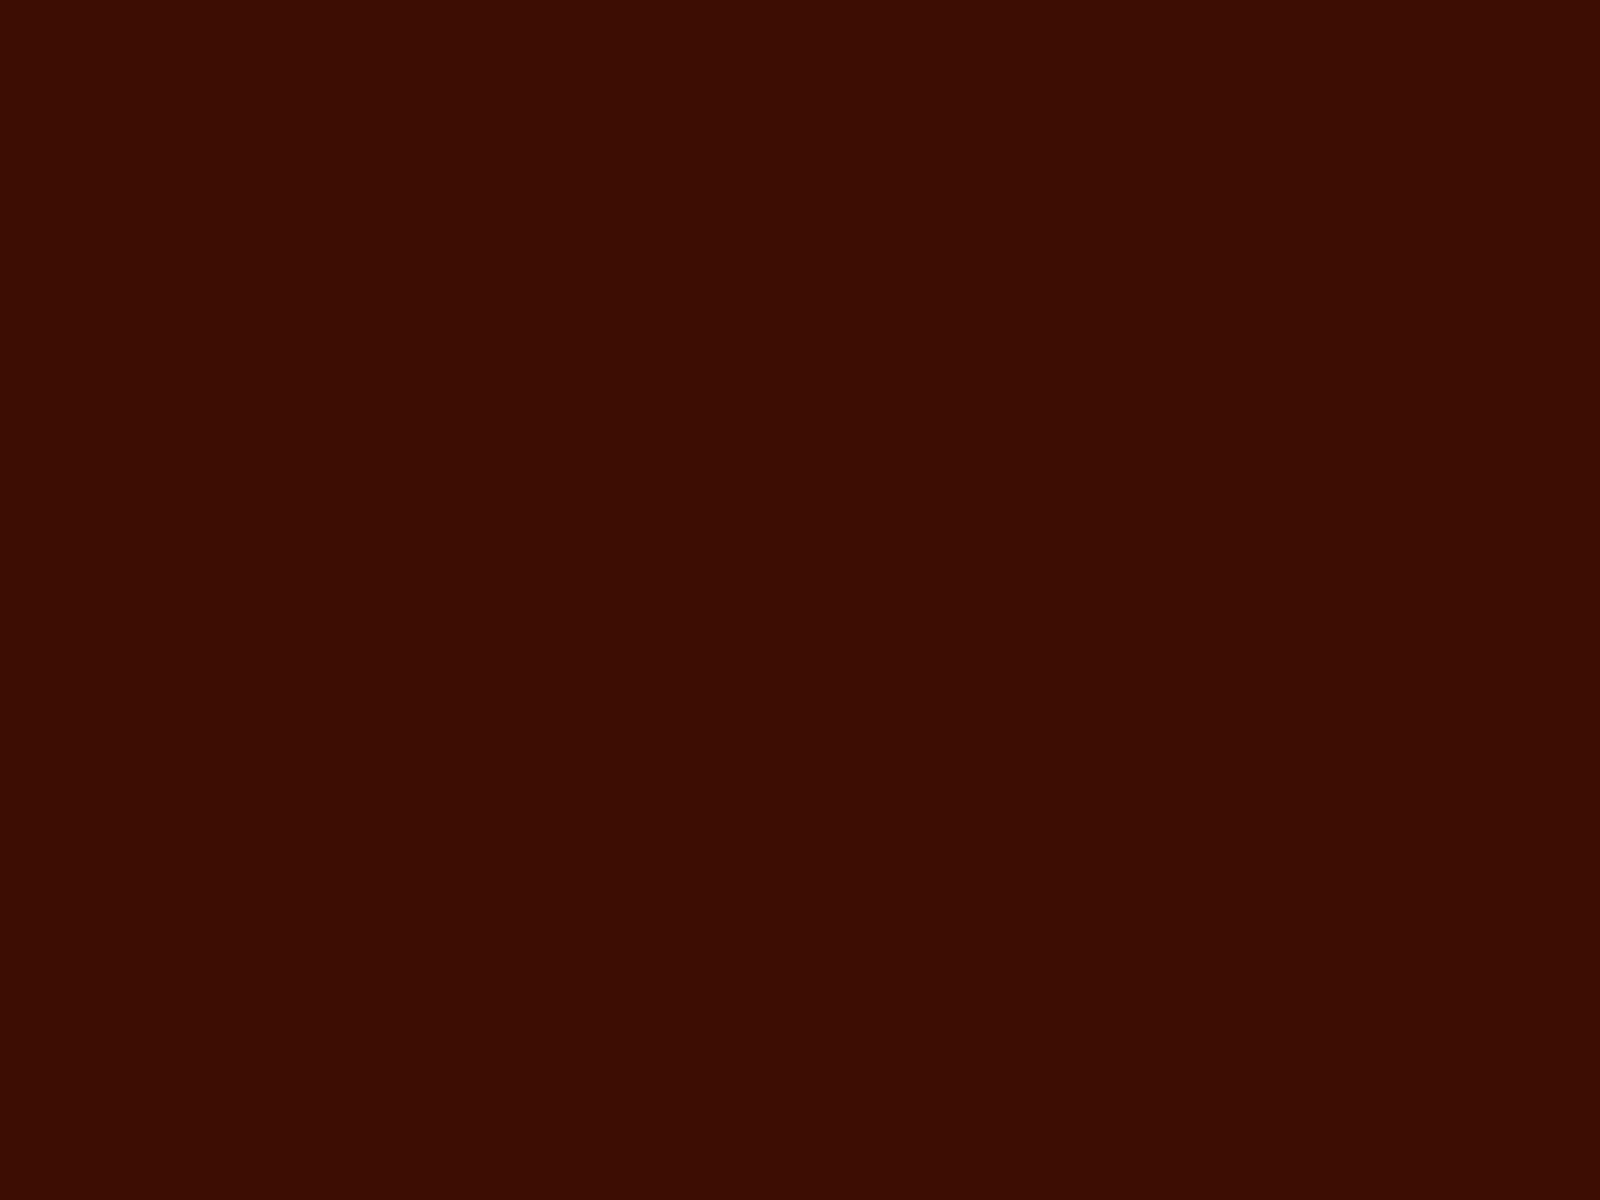 1600x1200 Black Bean Solid Color Background